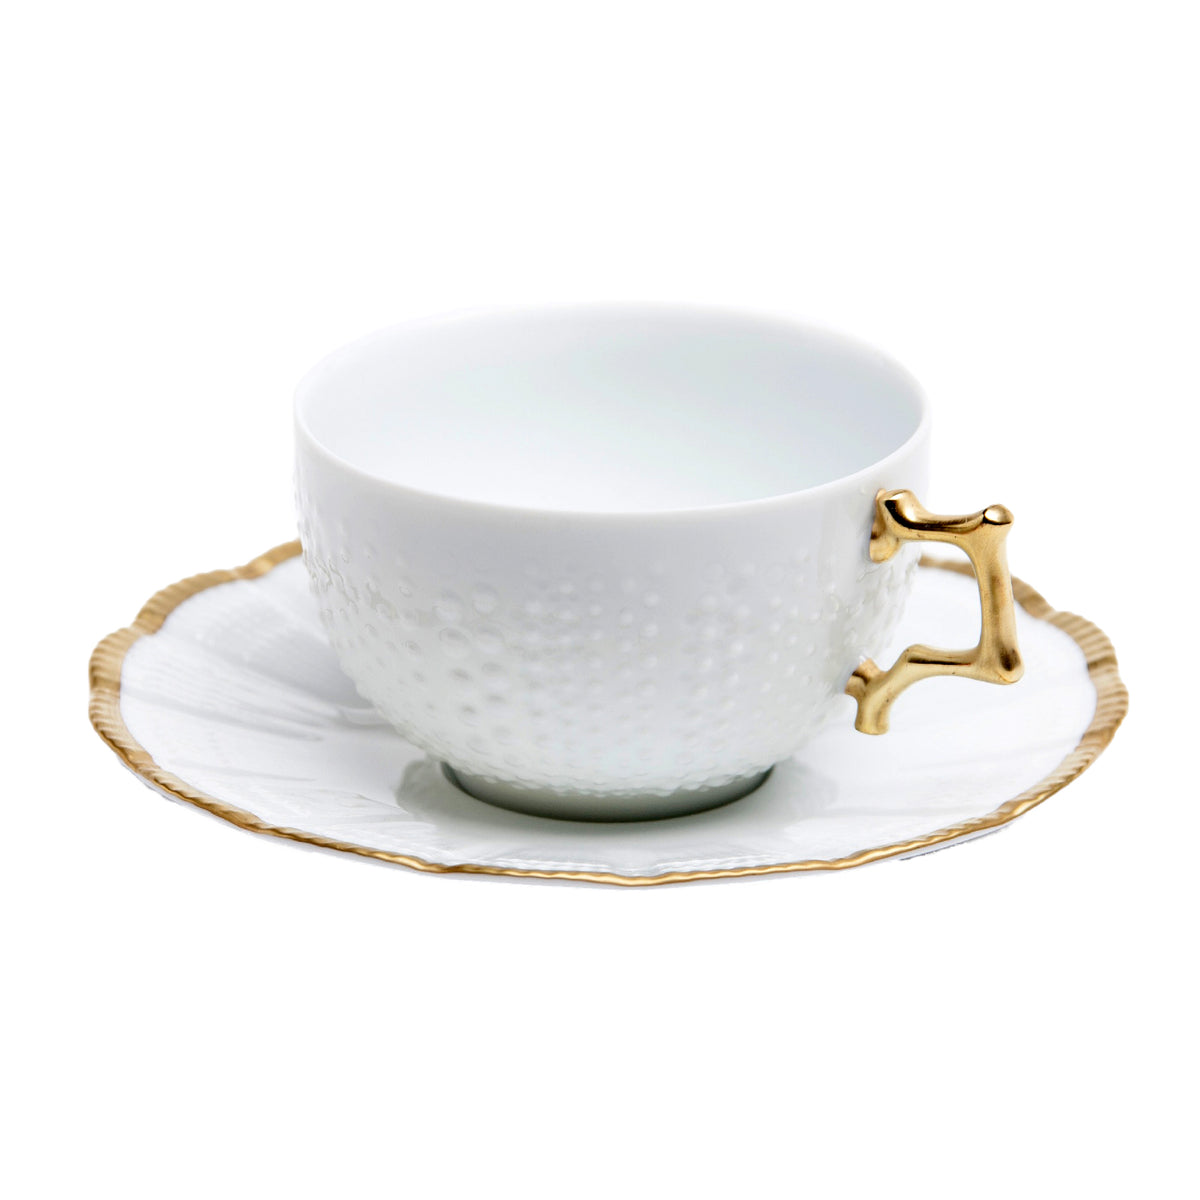 Corail Or Porcelain Tea Cup and Saucer